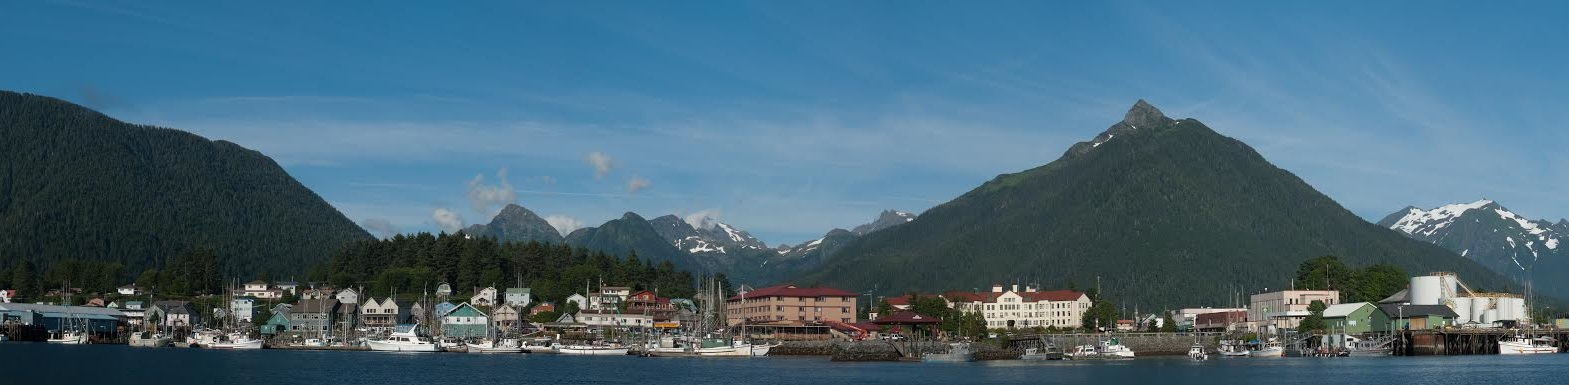 Sitka Conservation Society Scenery